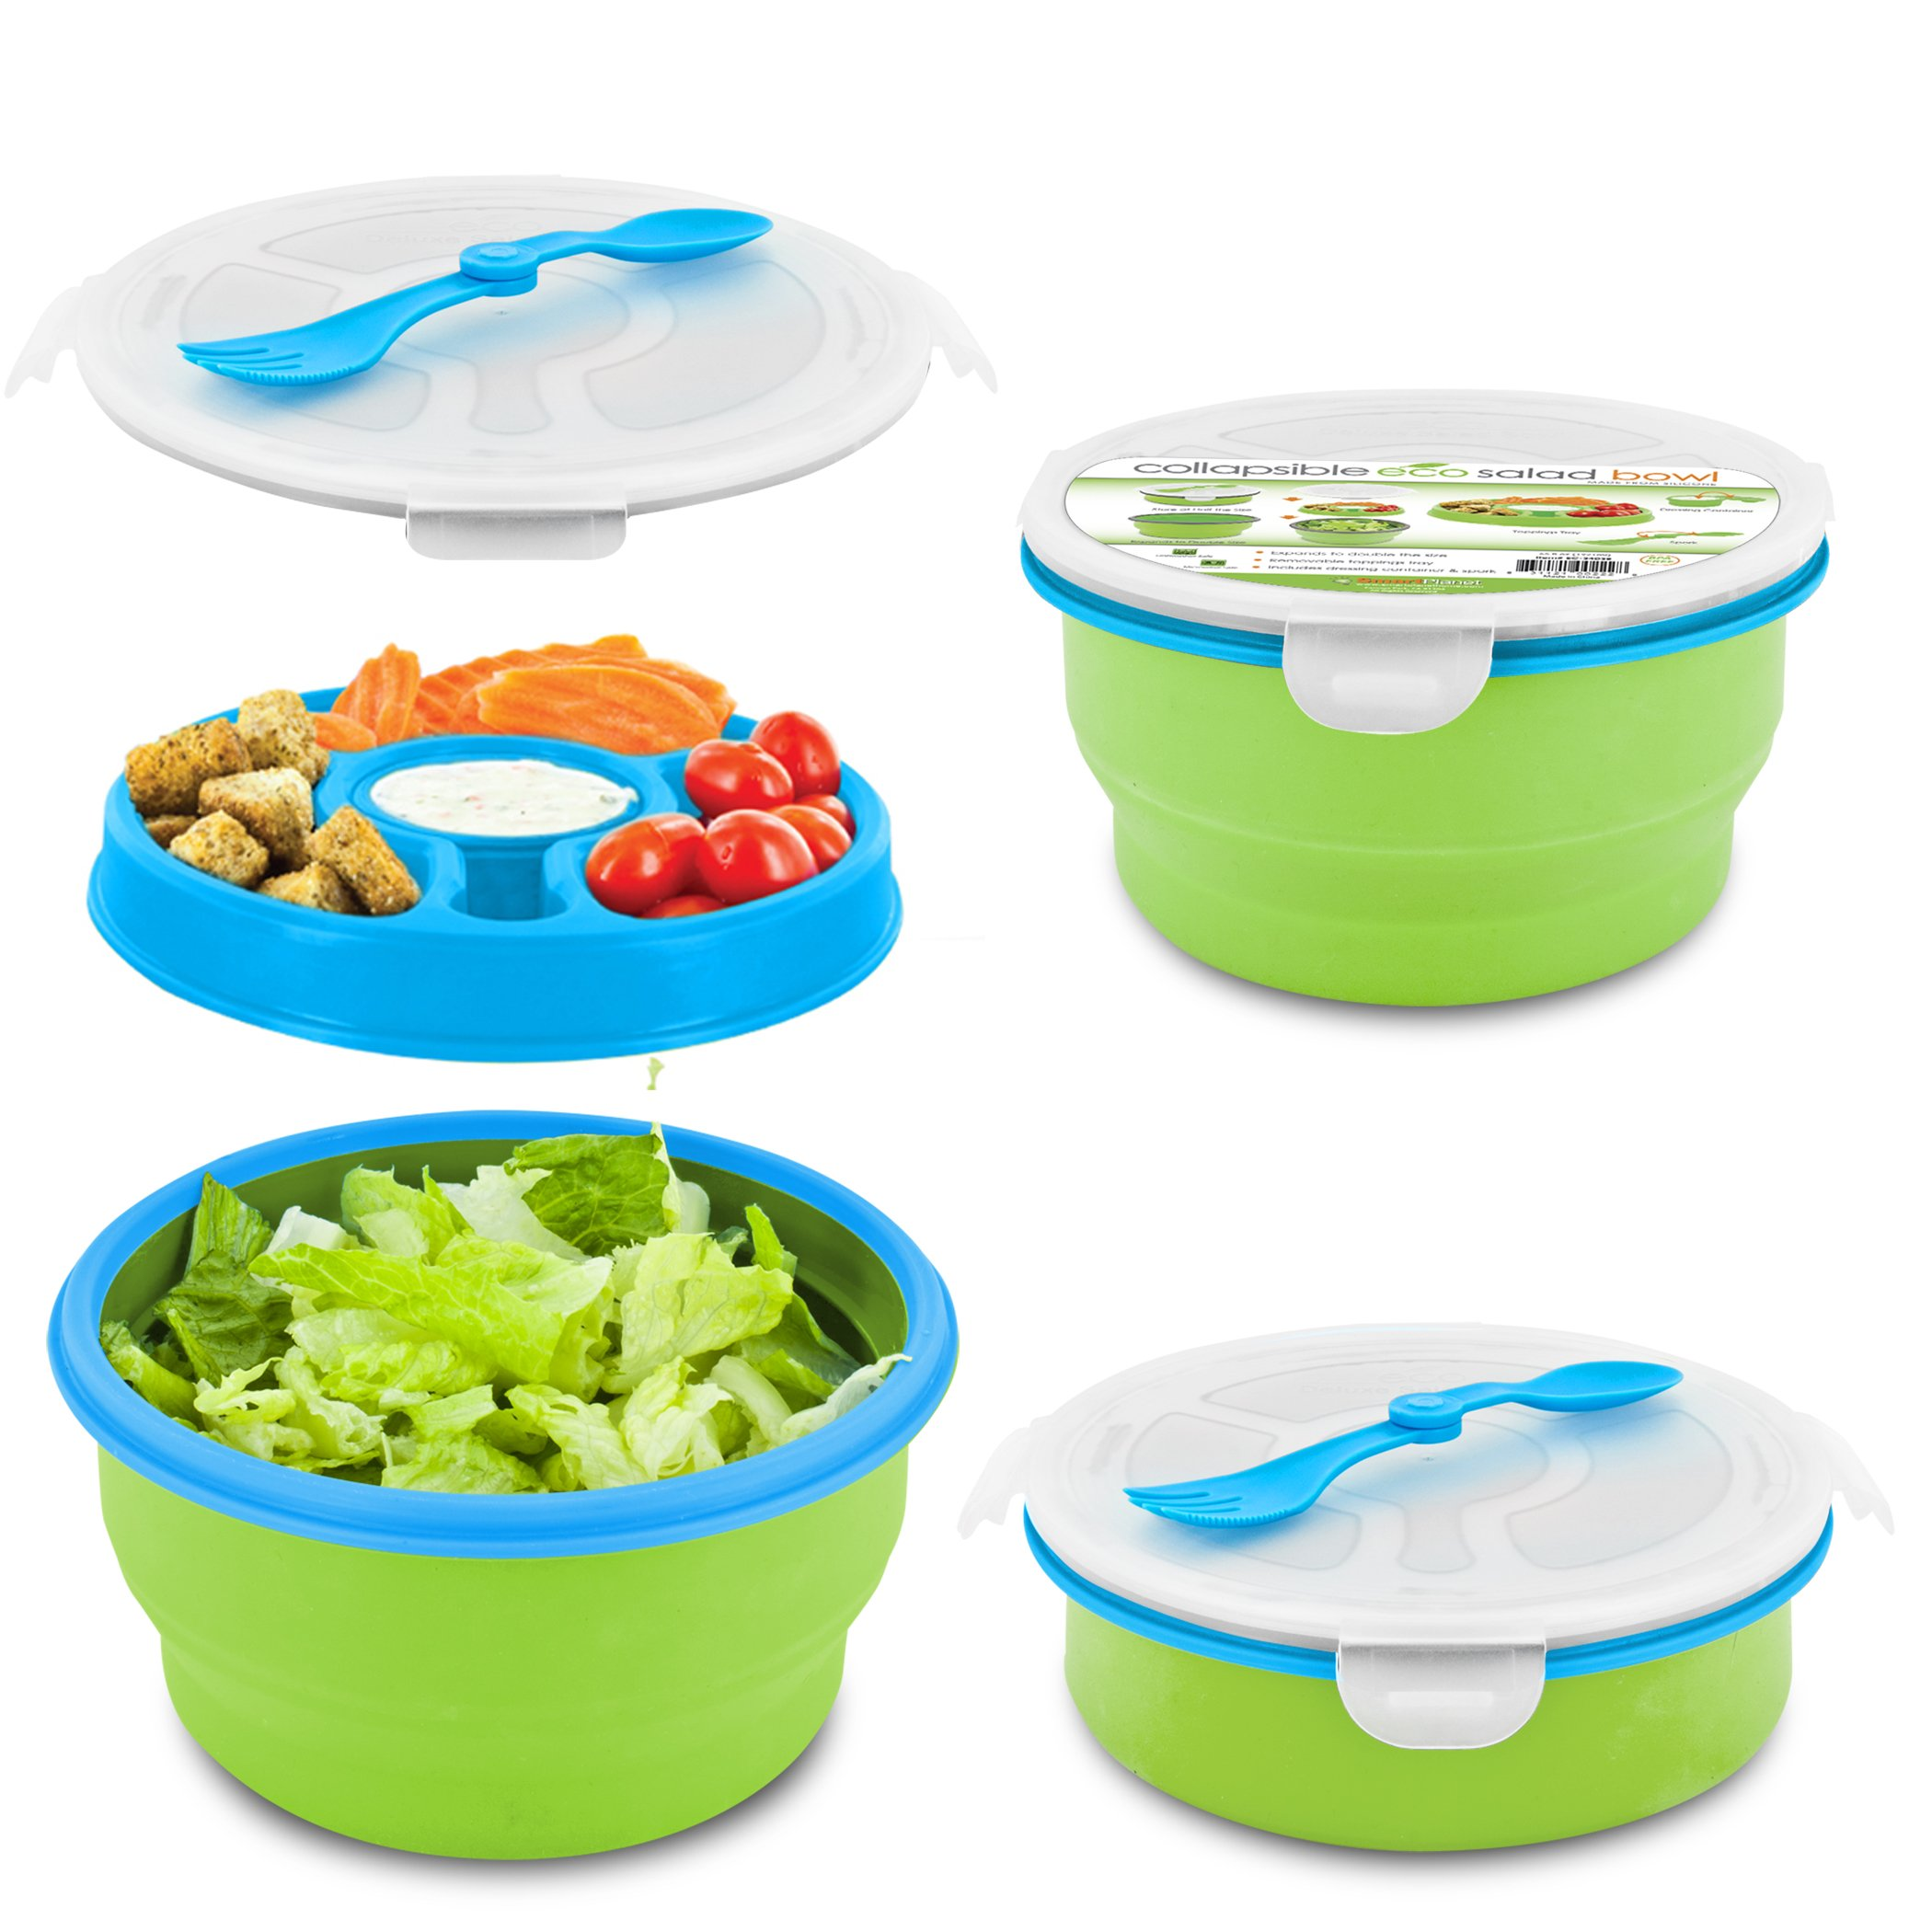 Smart Planet Eco Collapsible Salad Bowl, 65 oz, Blue/Green